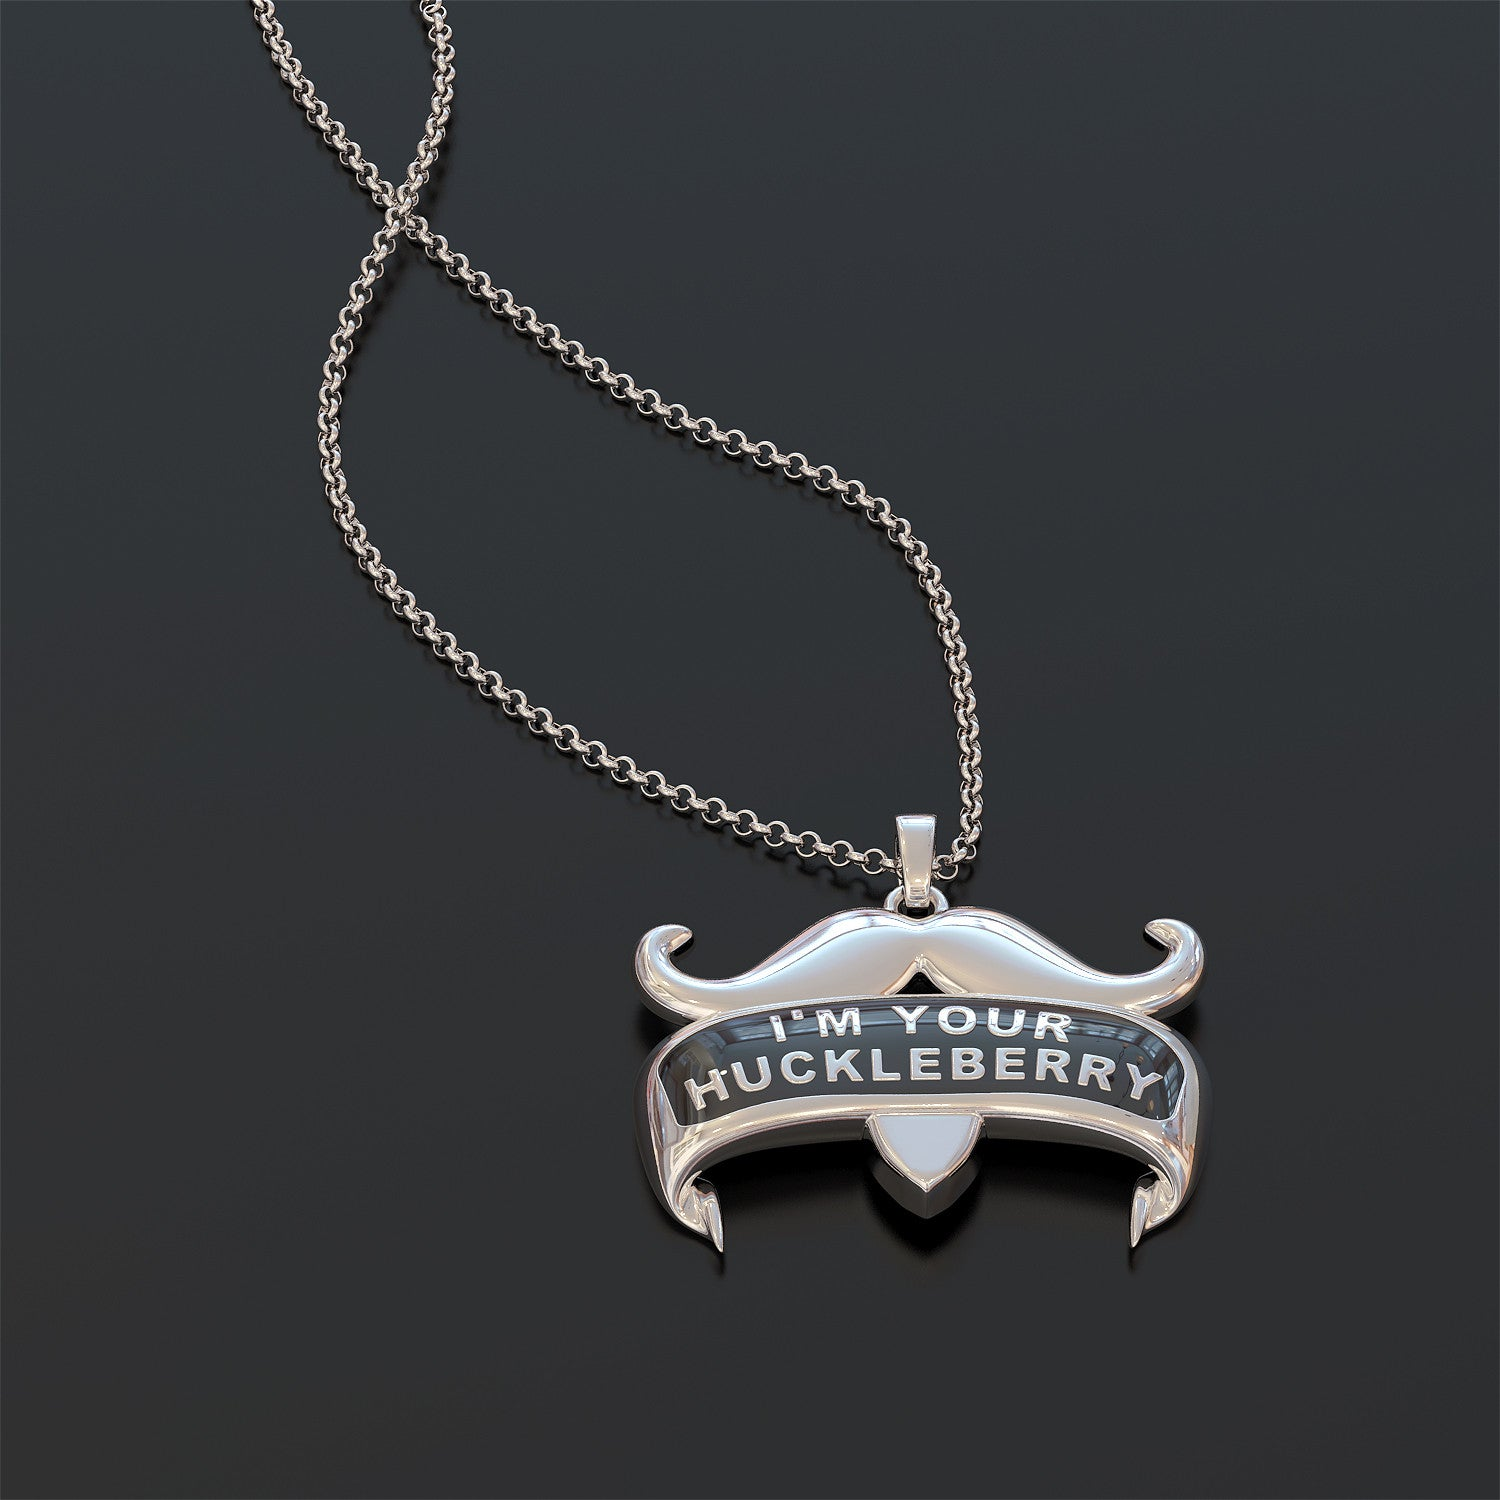 I'm Your Huckleberry - Sterling Silve Necklace and Pendant